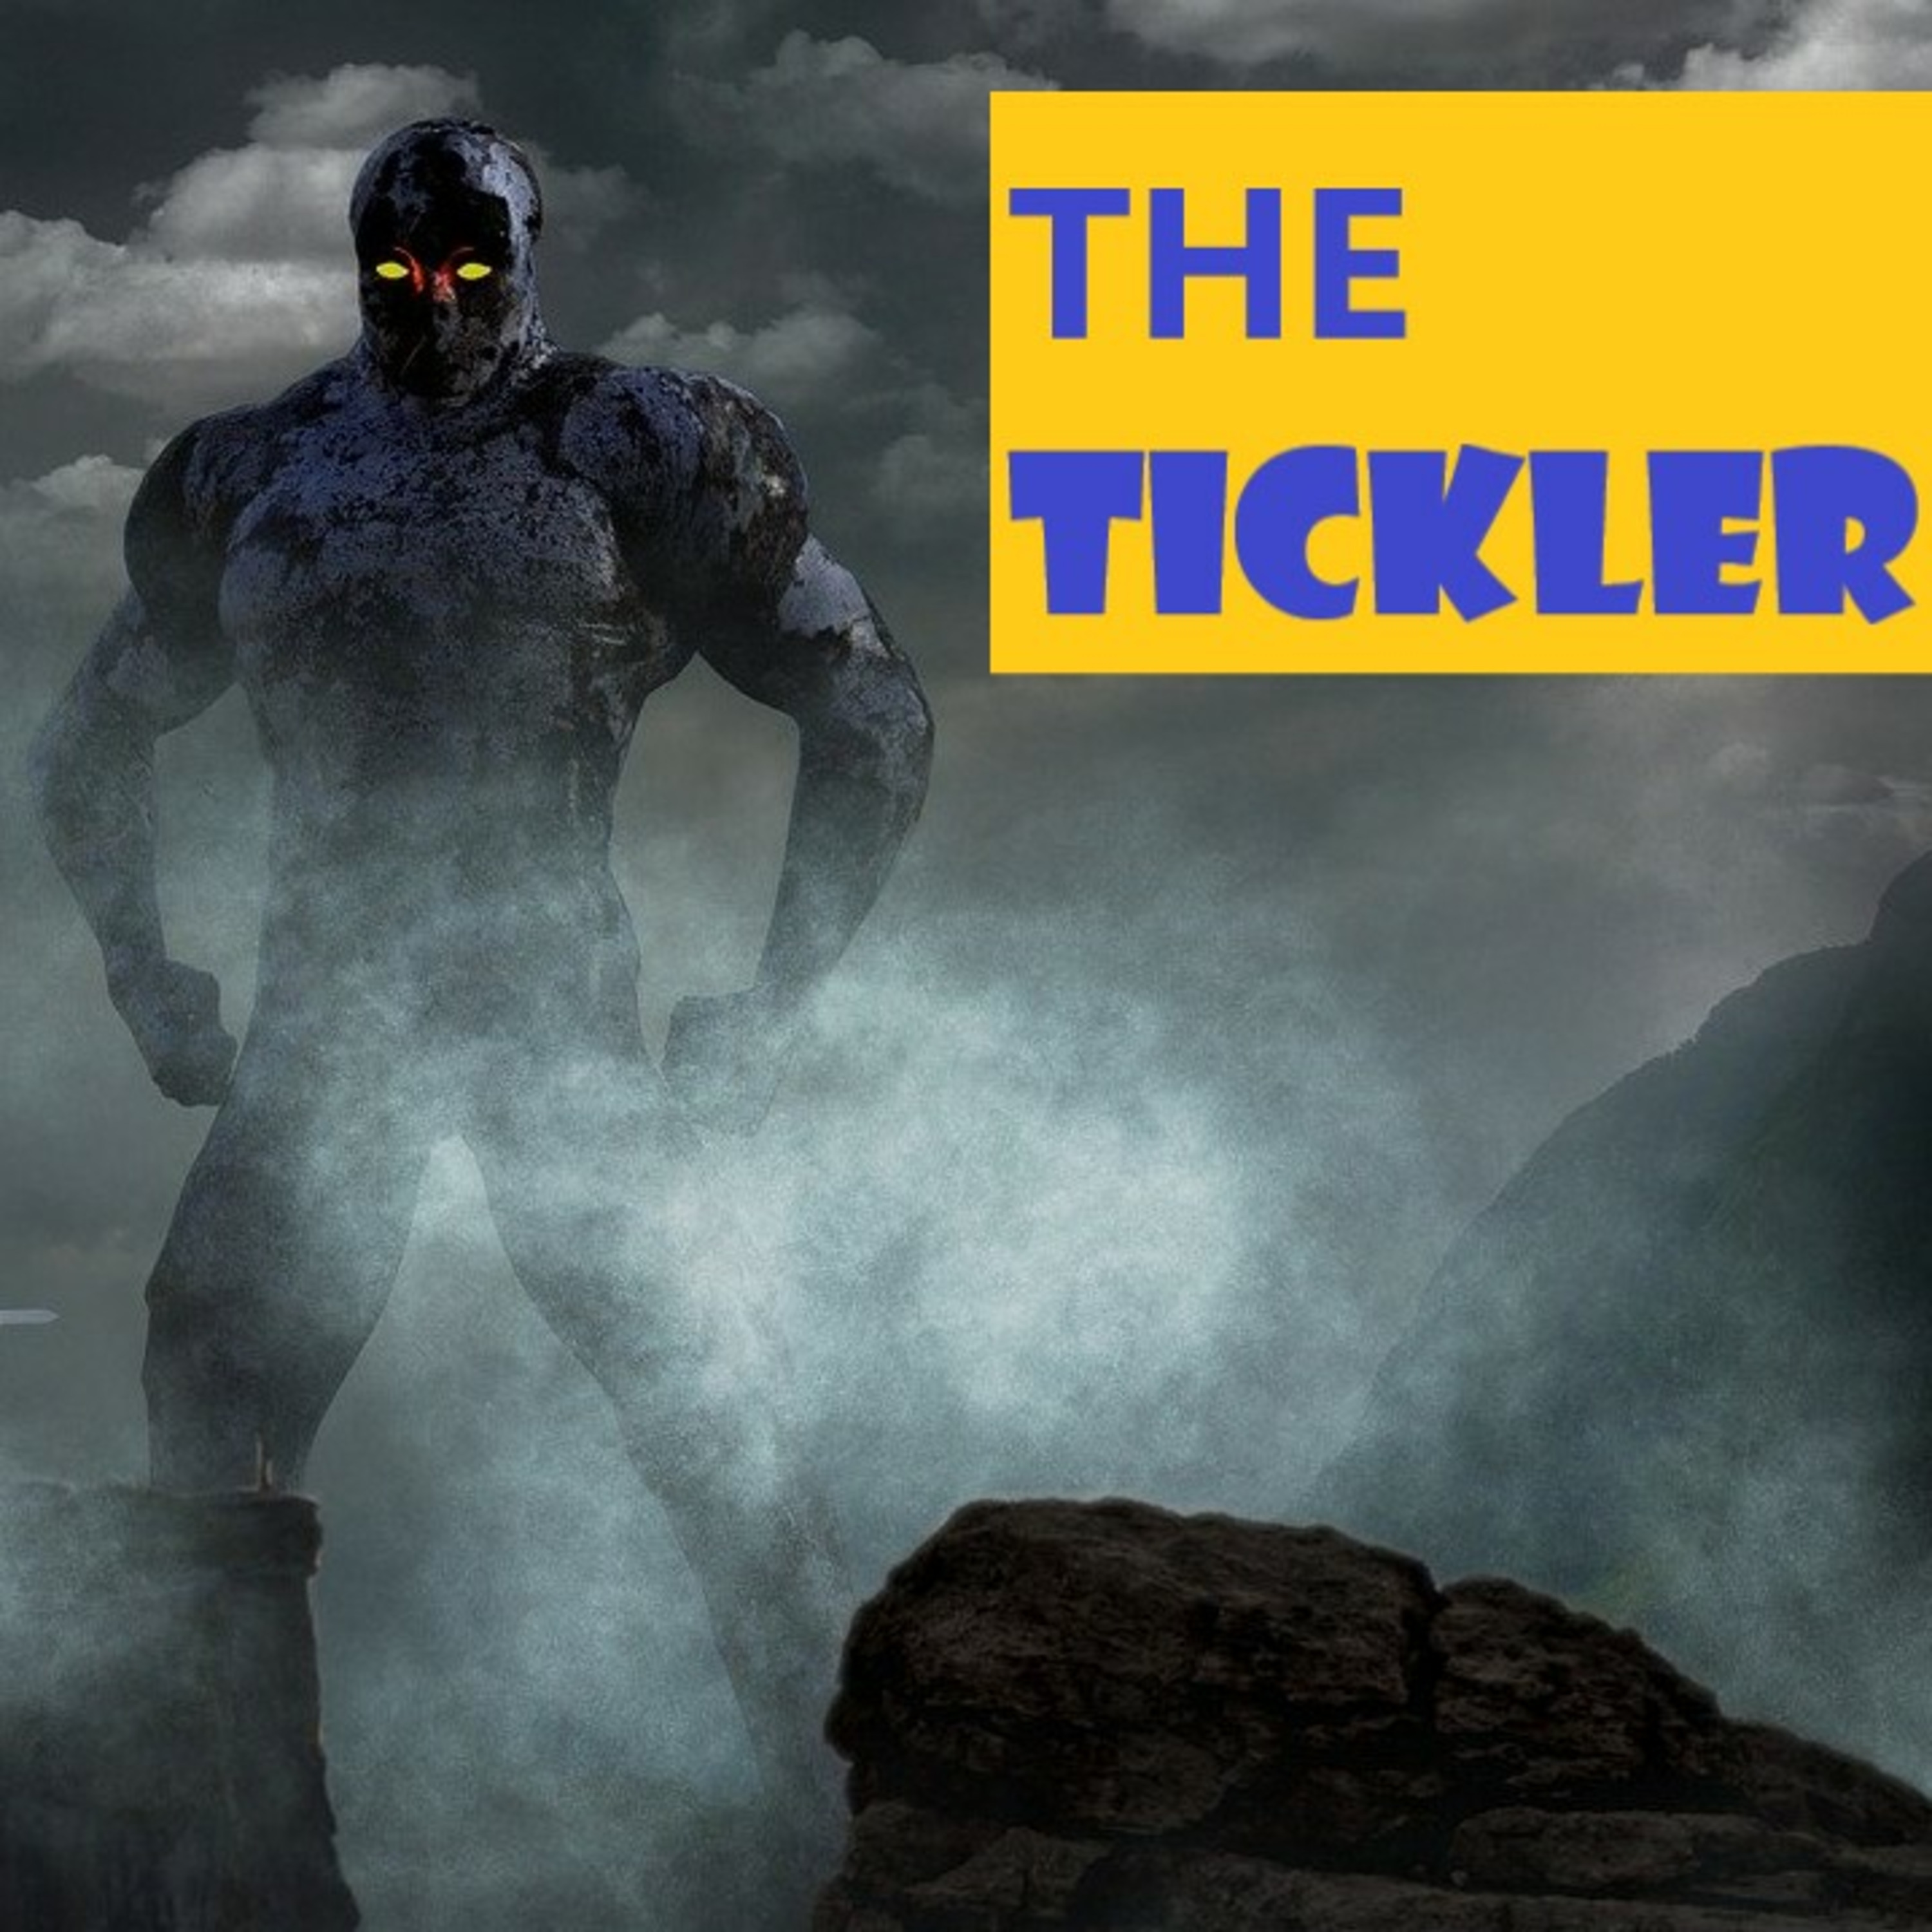 """Episode 50: Offended audience saviors and Issue #1 of """"The Tickler"""""""